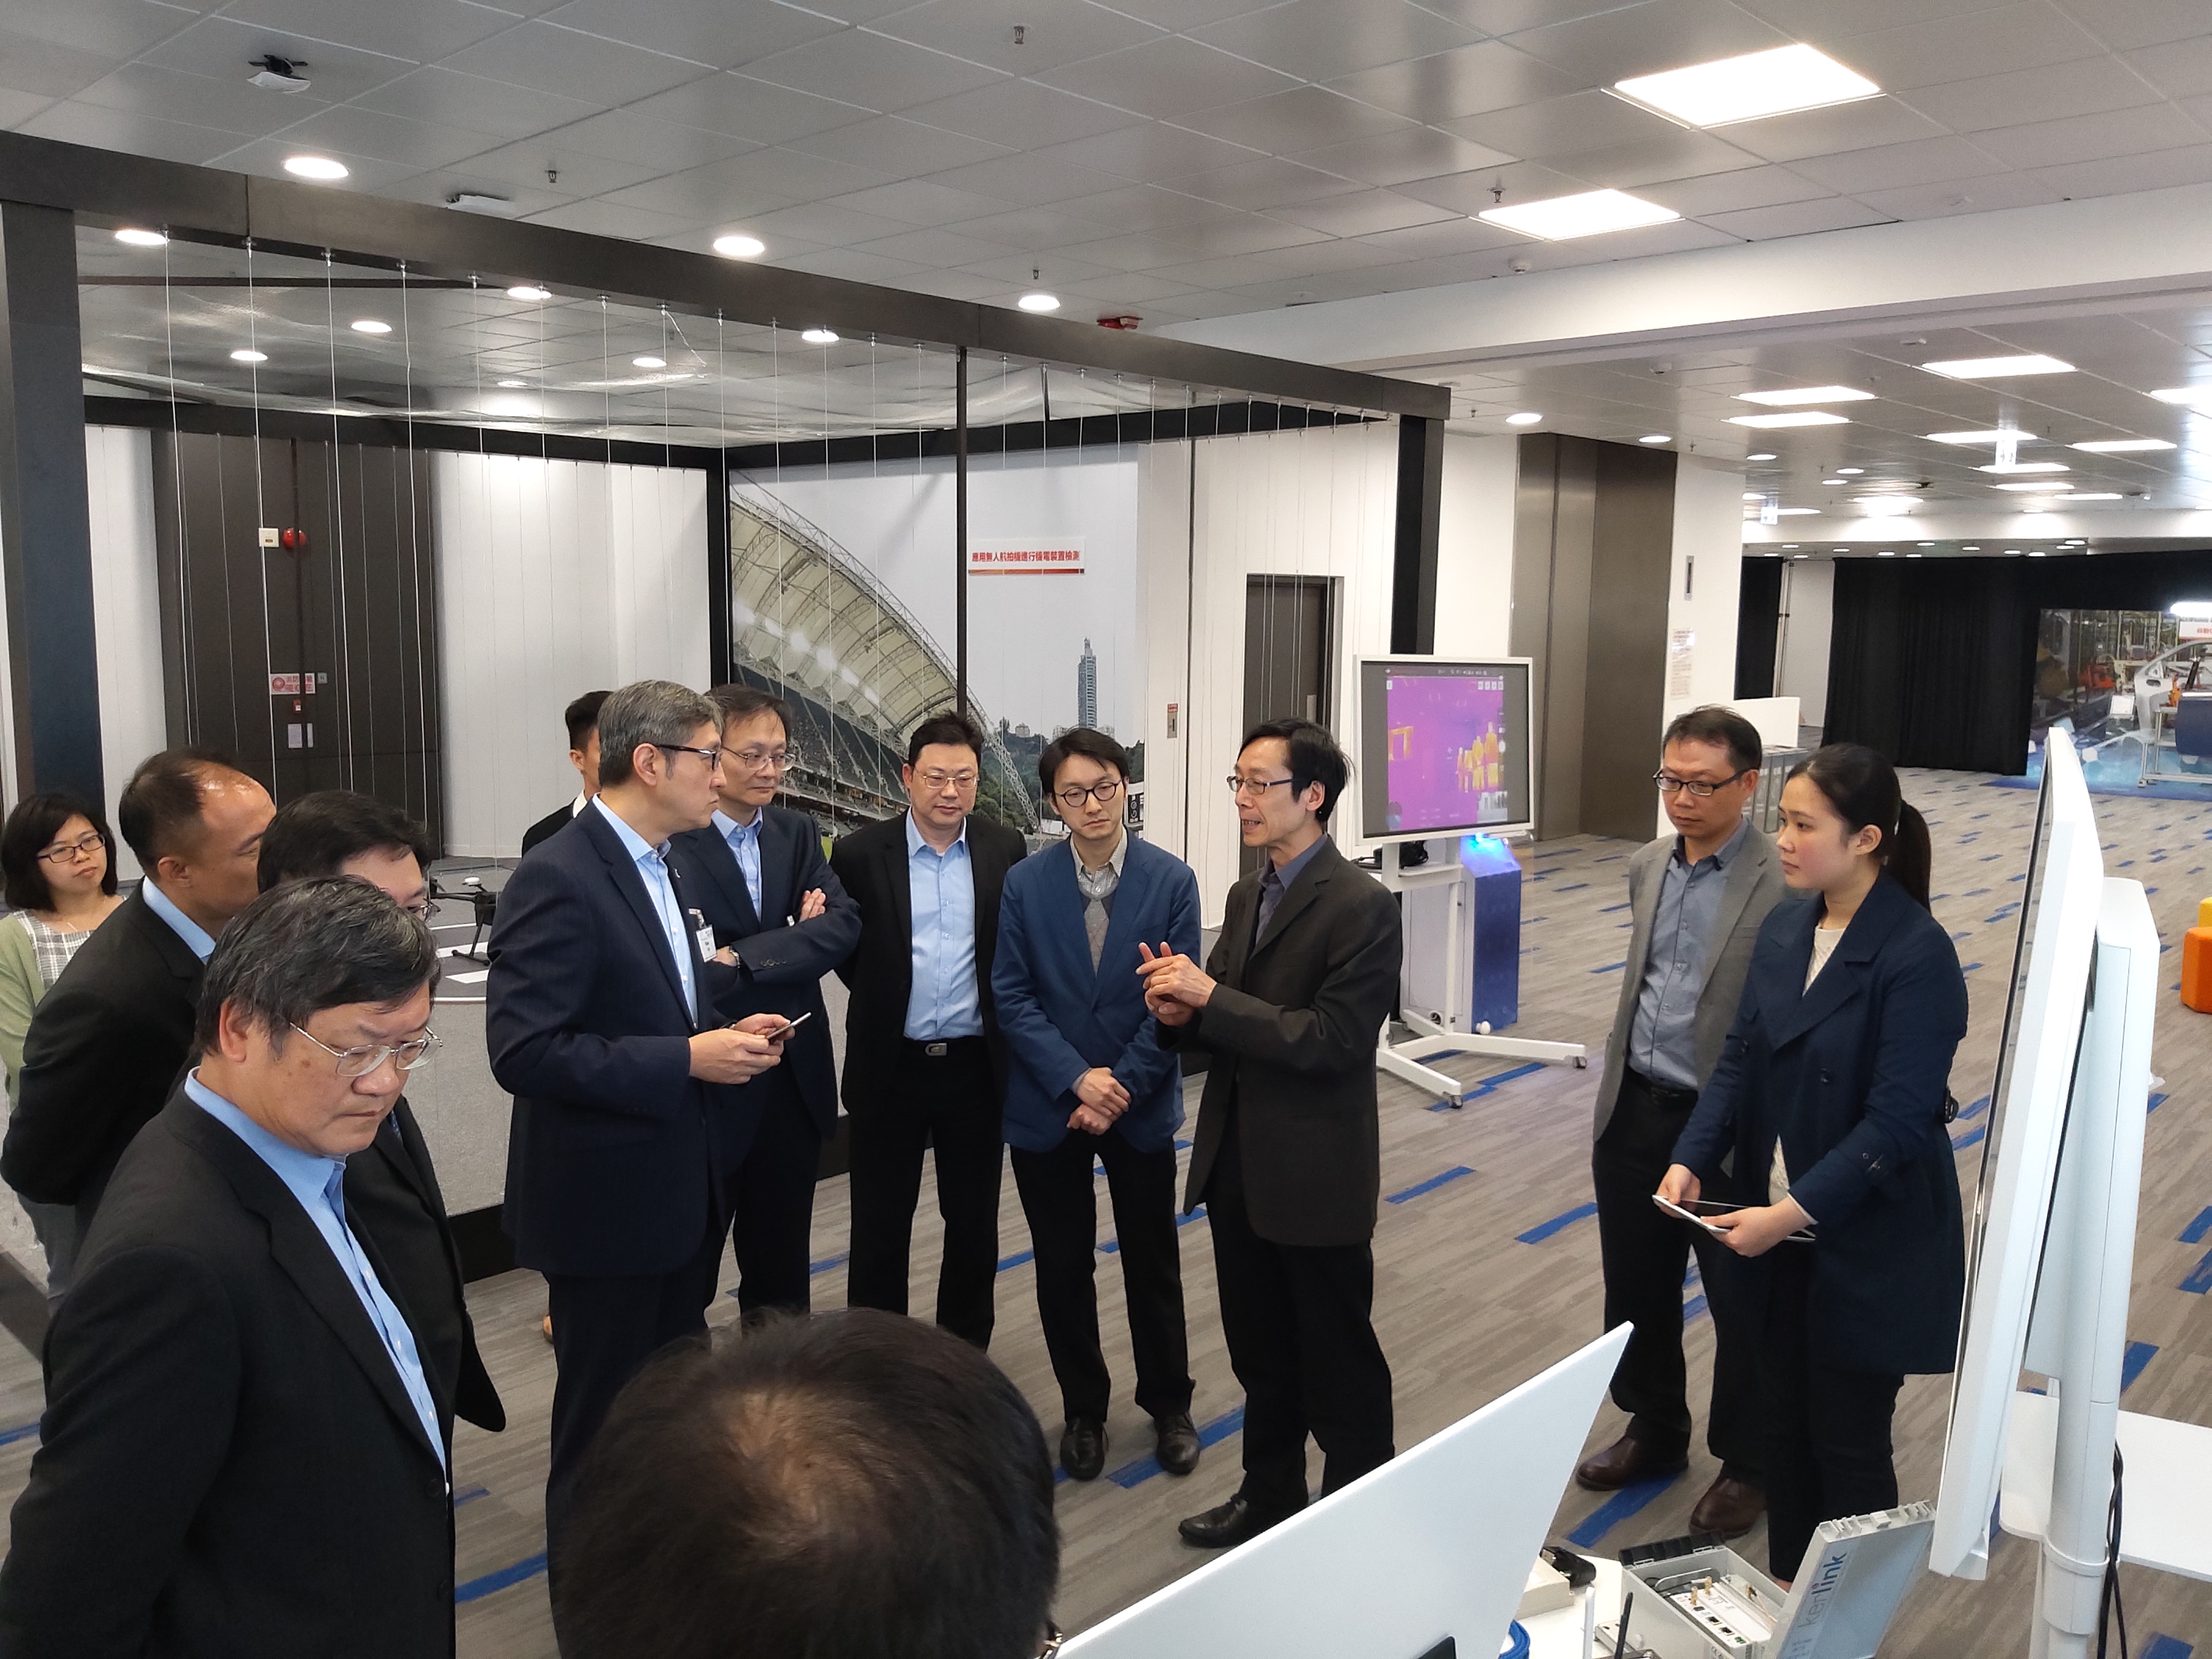 3 April 2019 - Cyperport visited EMSD